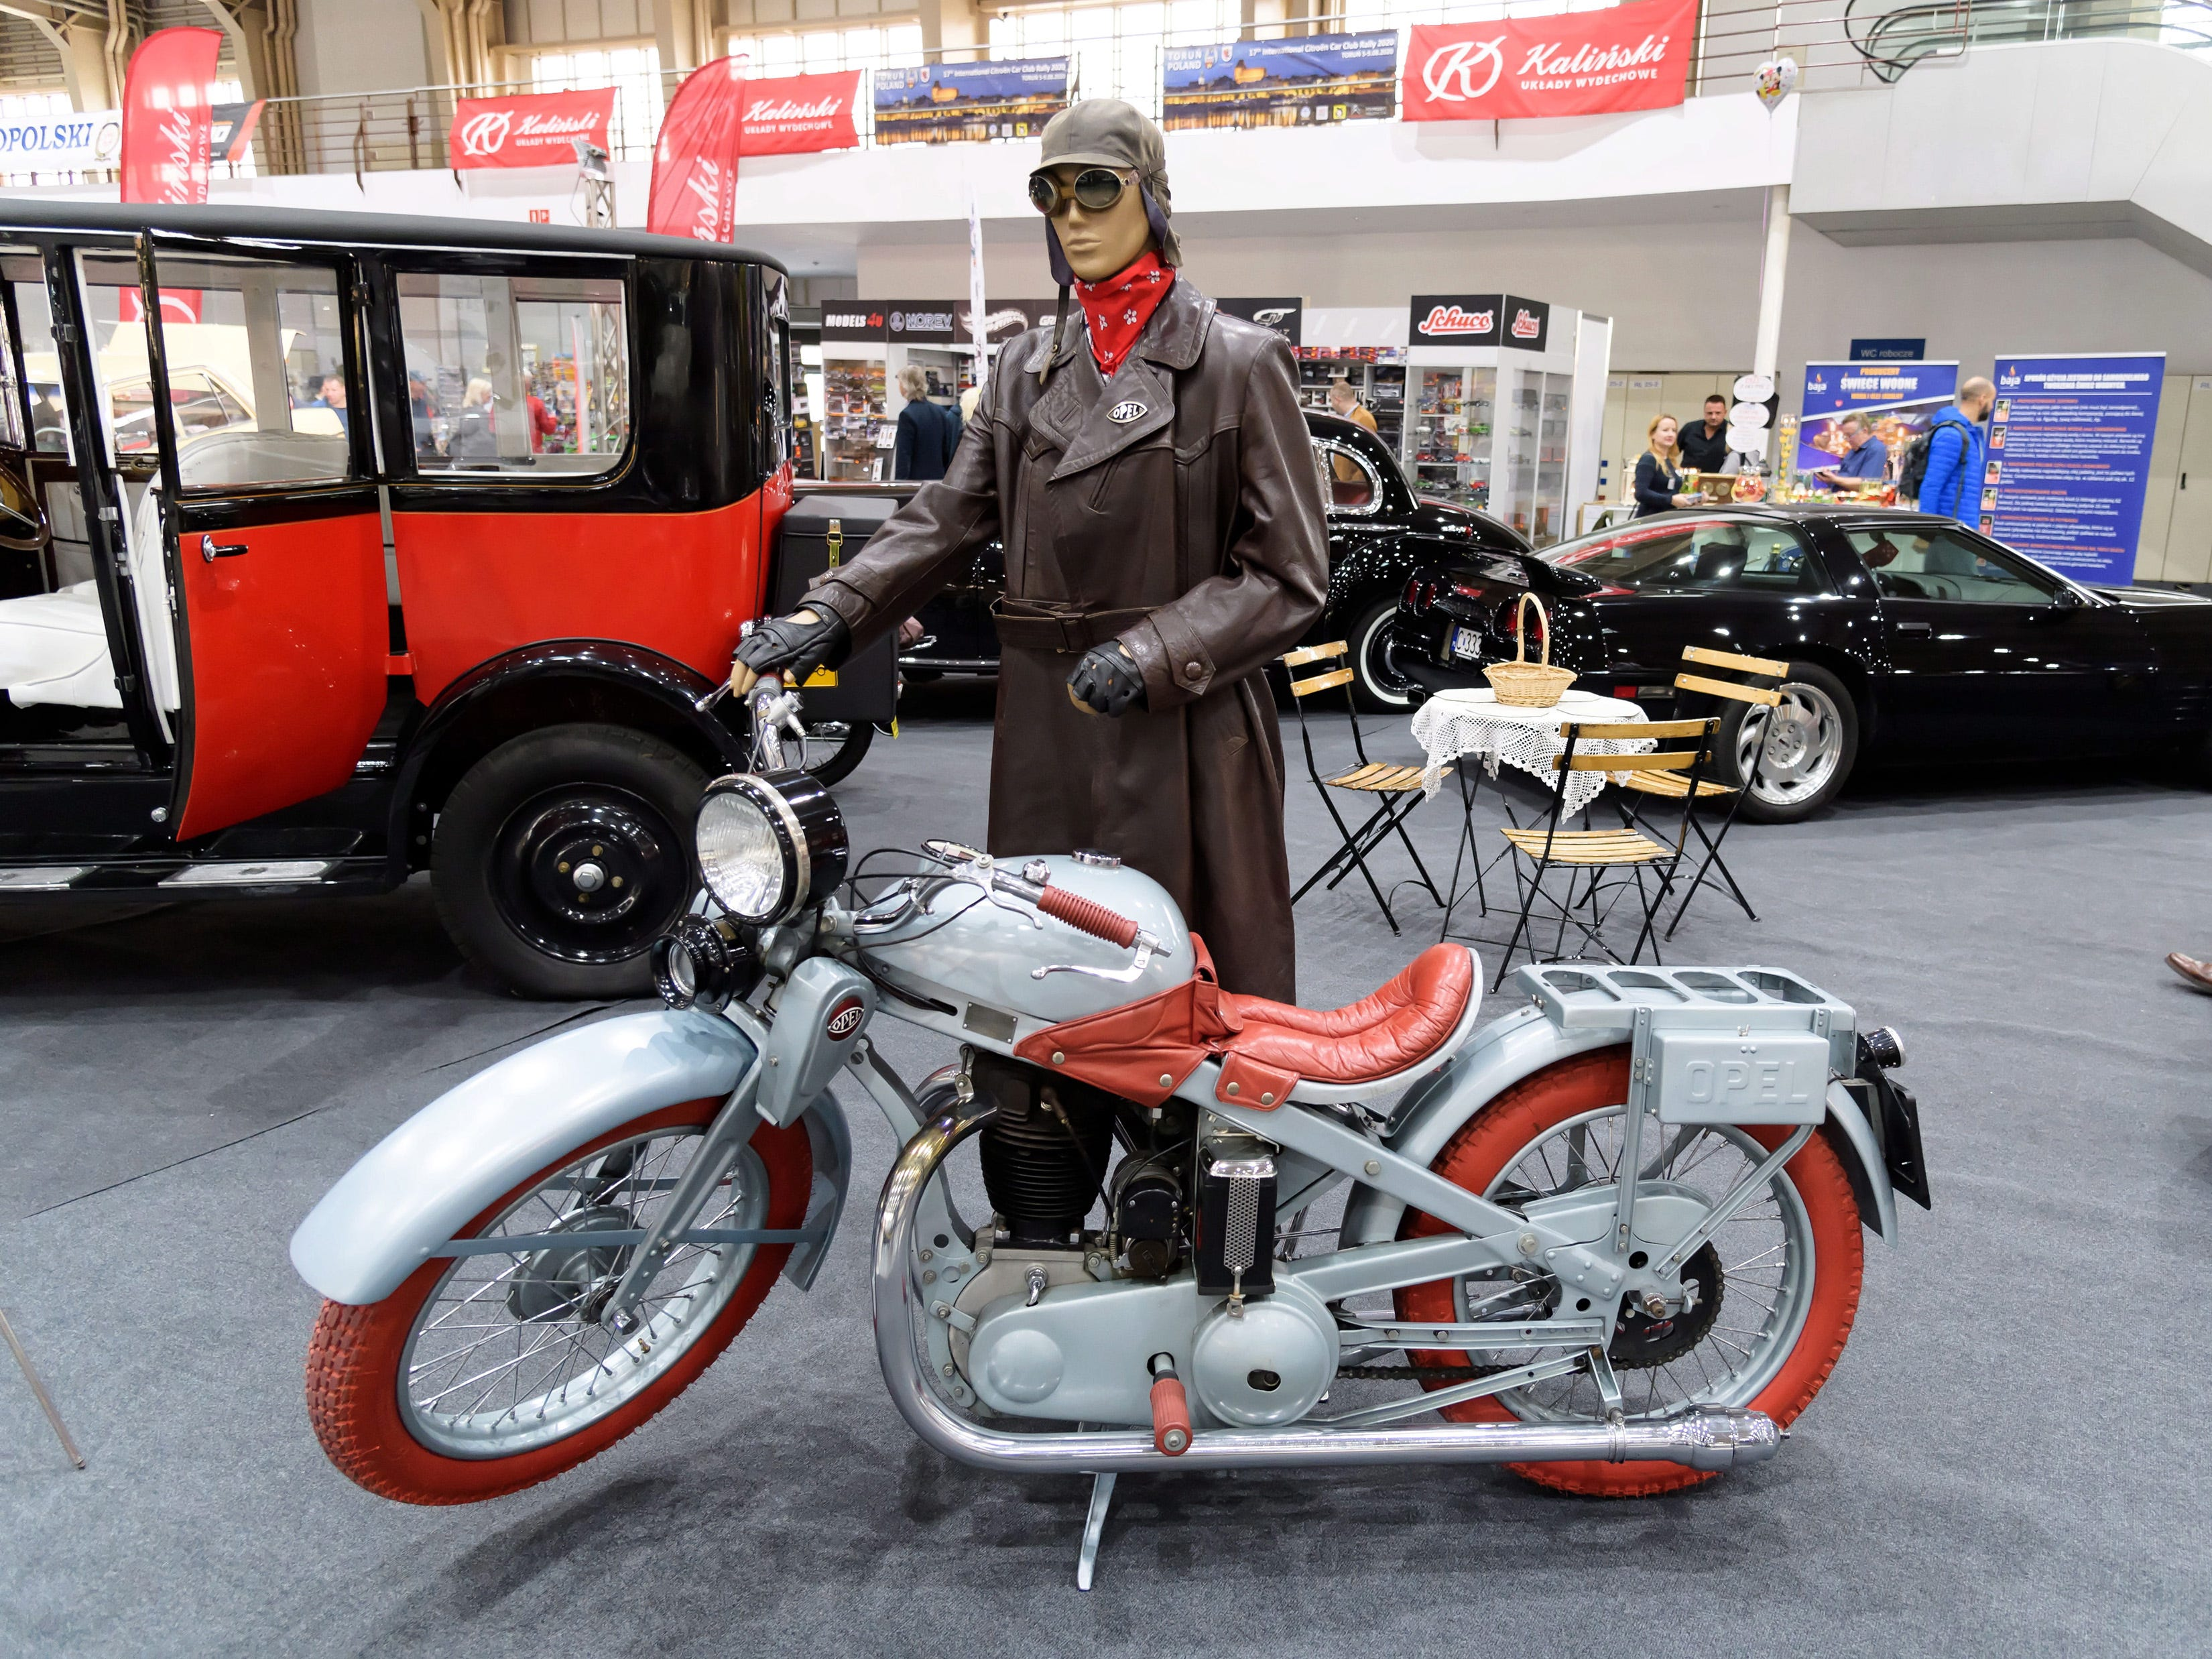 An Opel motorcycle.